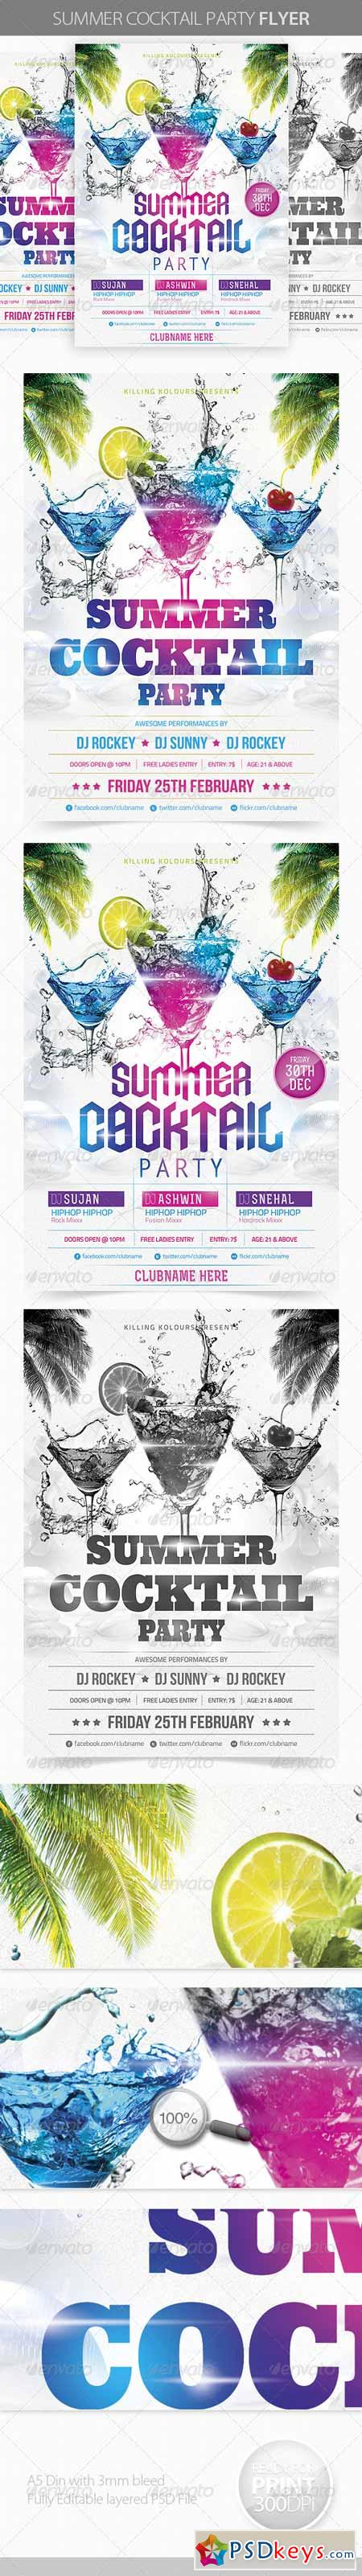 Summer Cocktail Party Flyer 4178914